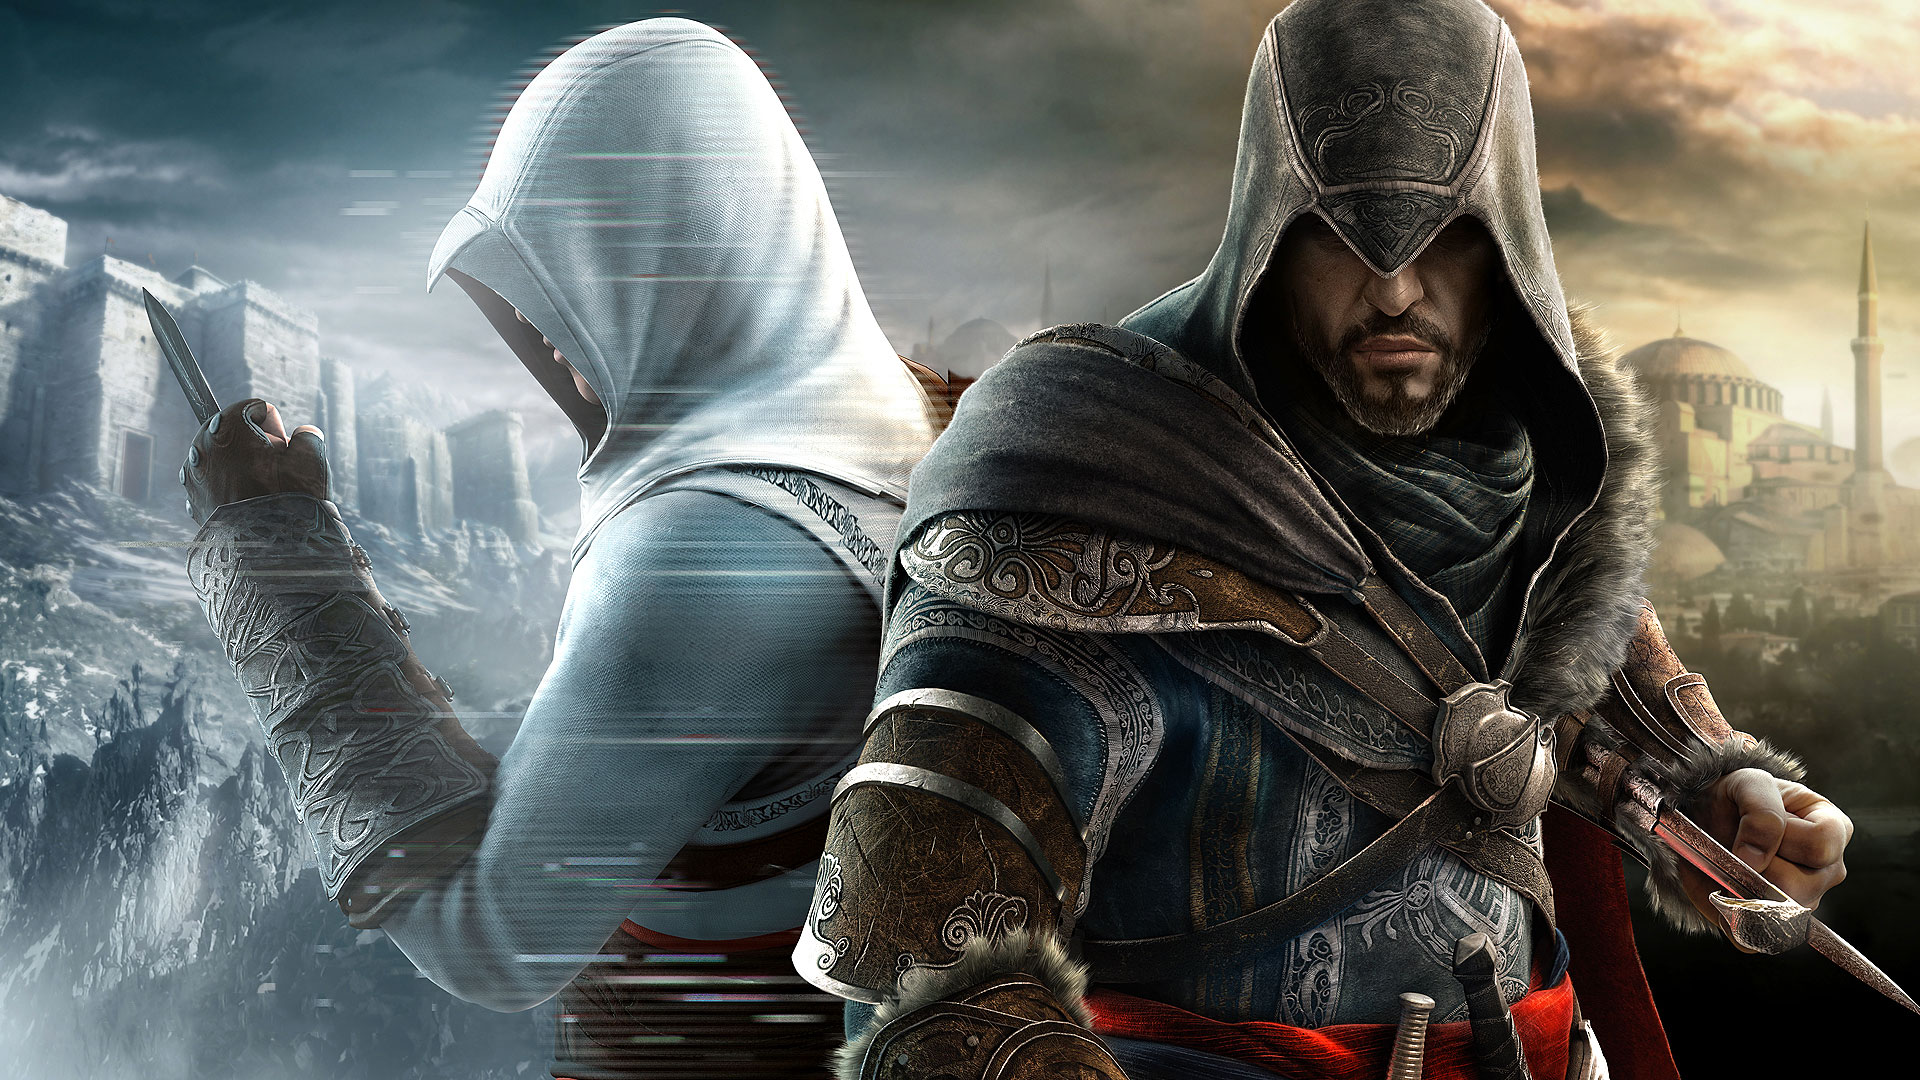 Assassins Creed Revelations wallpaper   595617 1920x1080